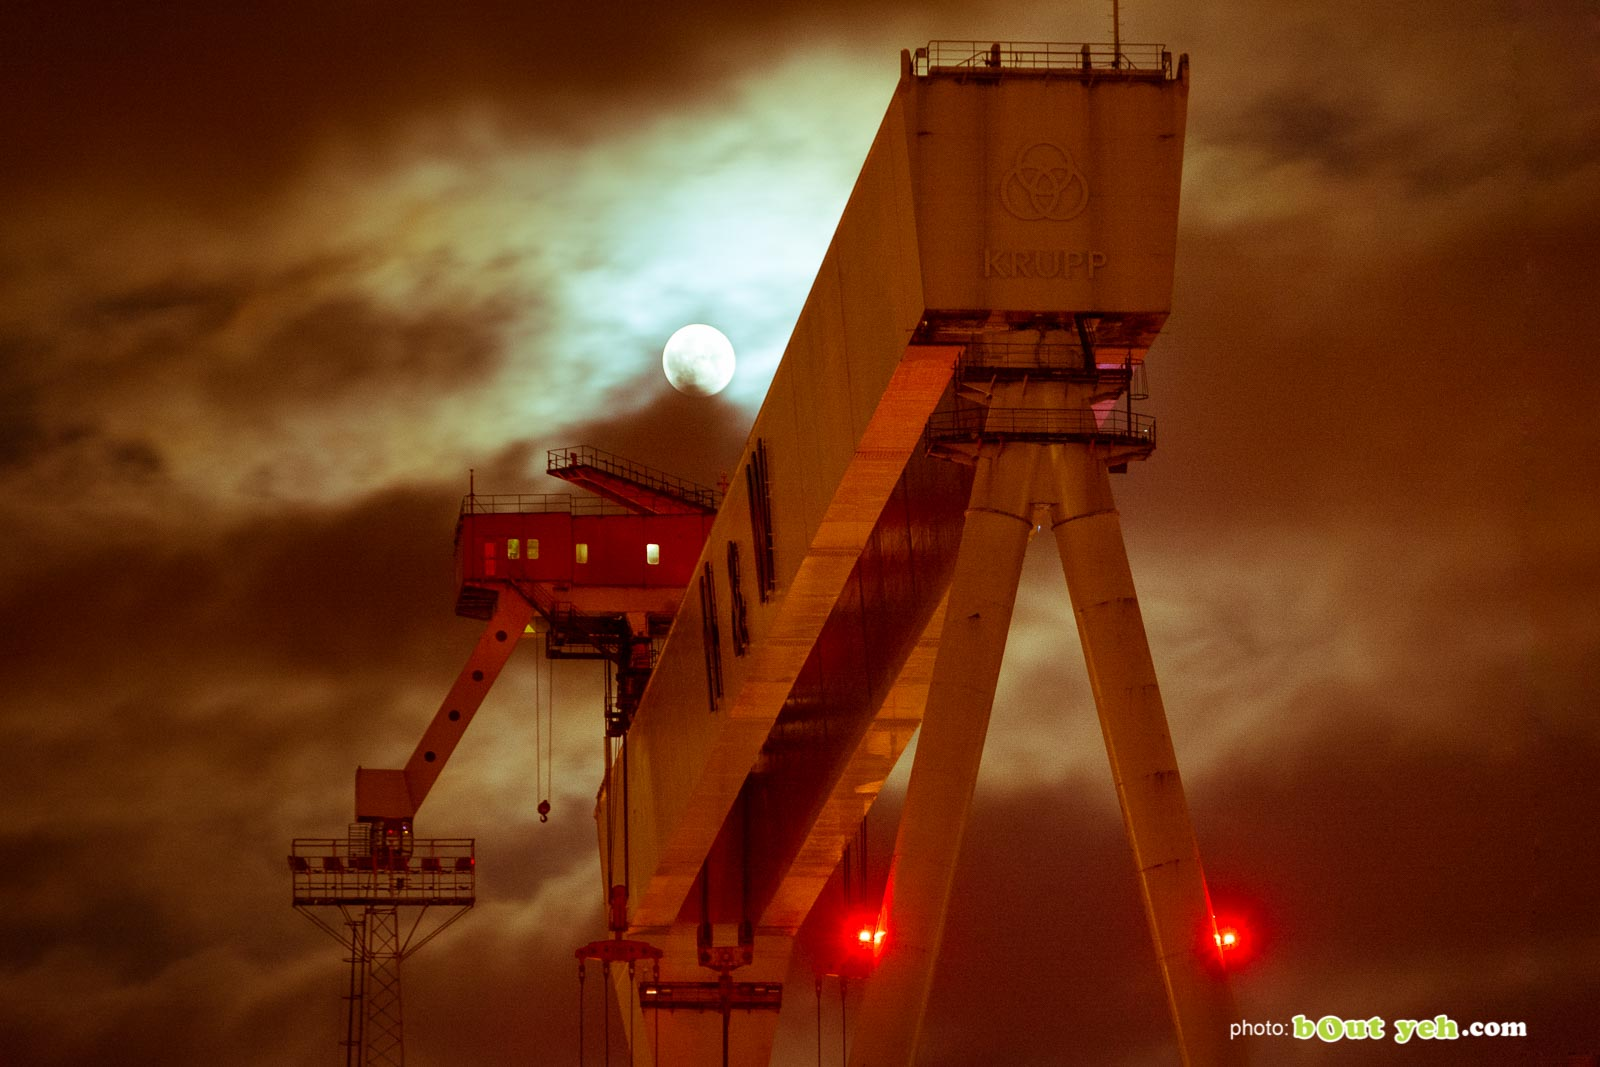 Harland and Wolff Shipyard Belfast at night